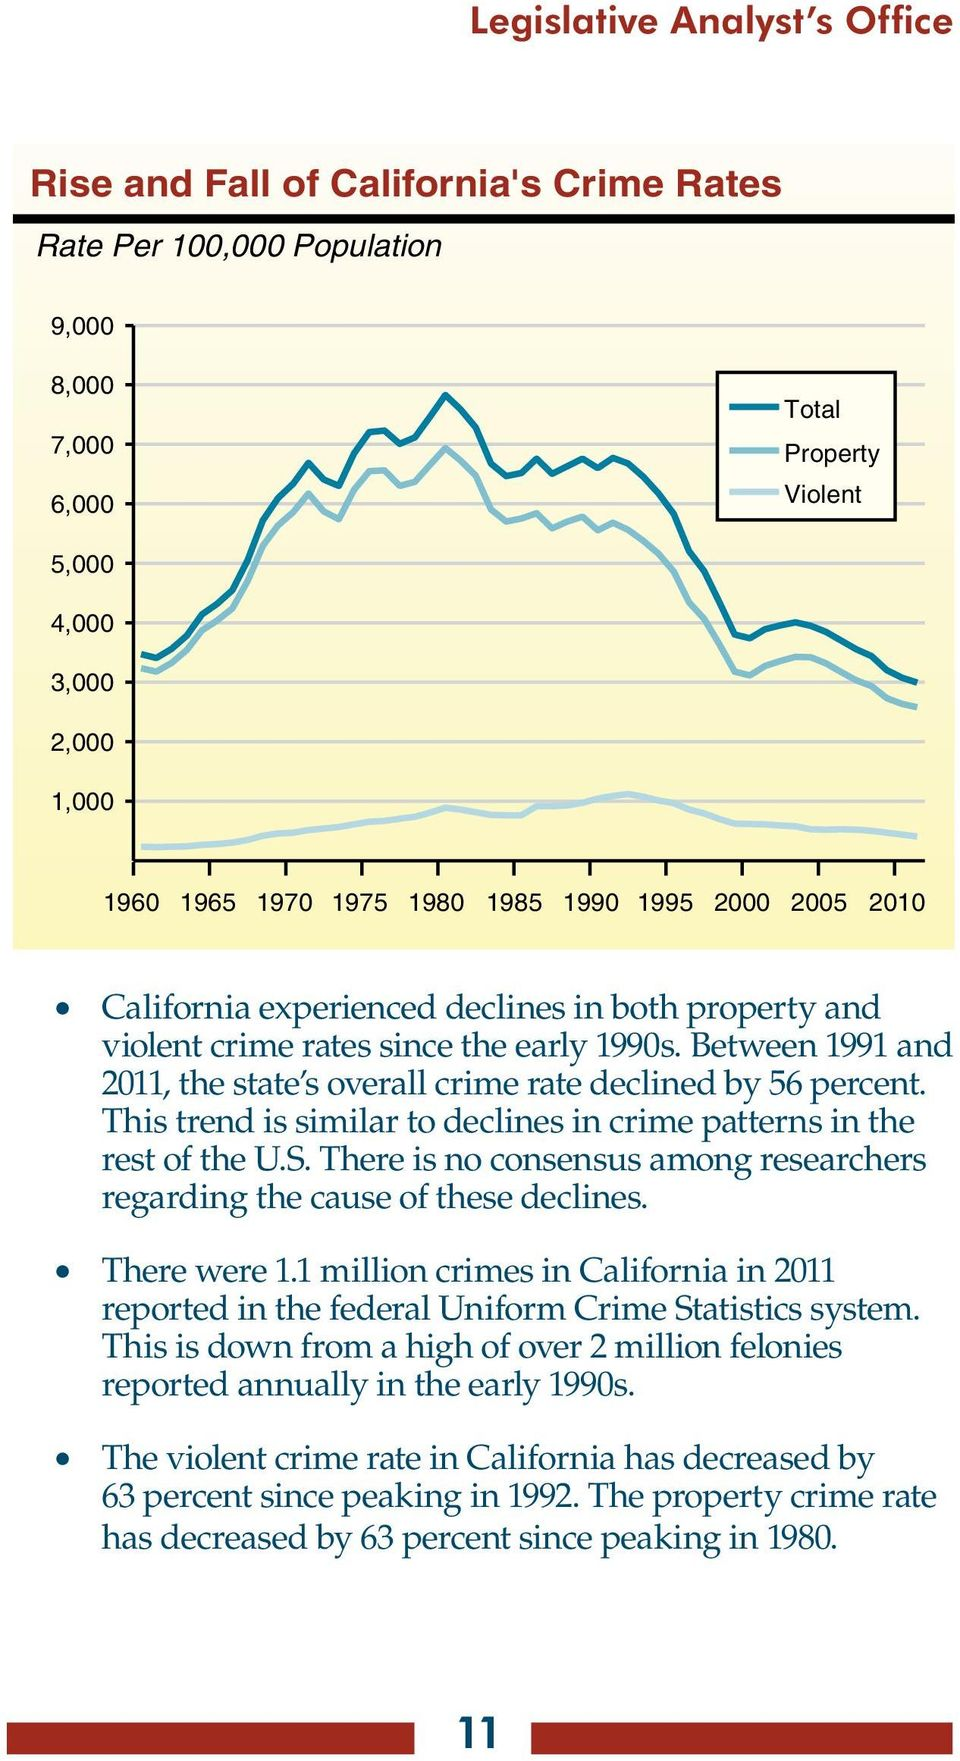 Between 1991 and 2011, the state s overall crime rate declined by 56 percent. This trend is similar to declines in crime patterns in the rest of the U.S.